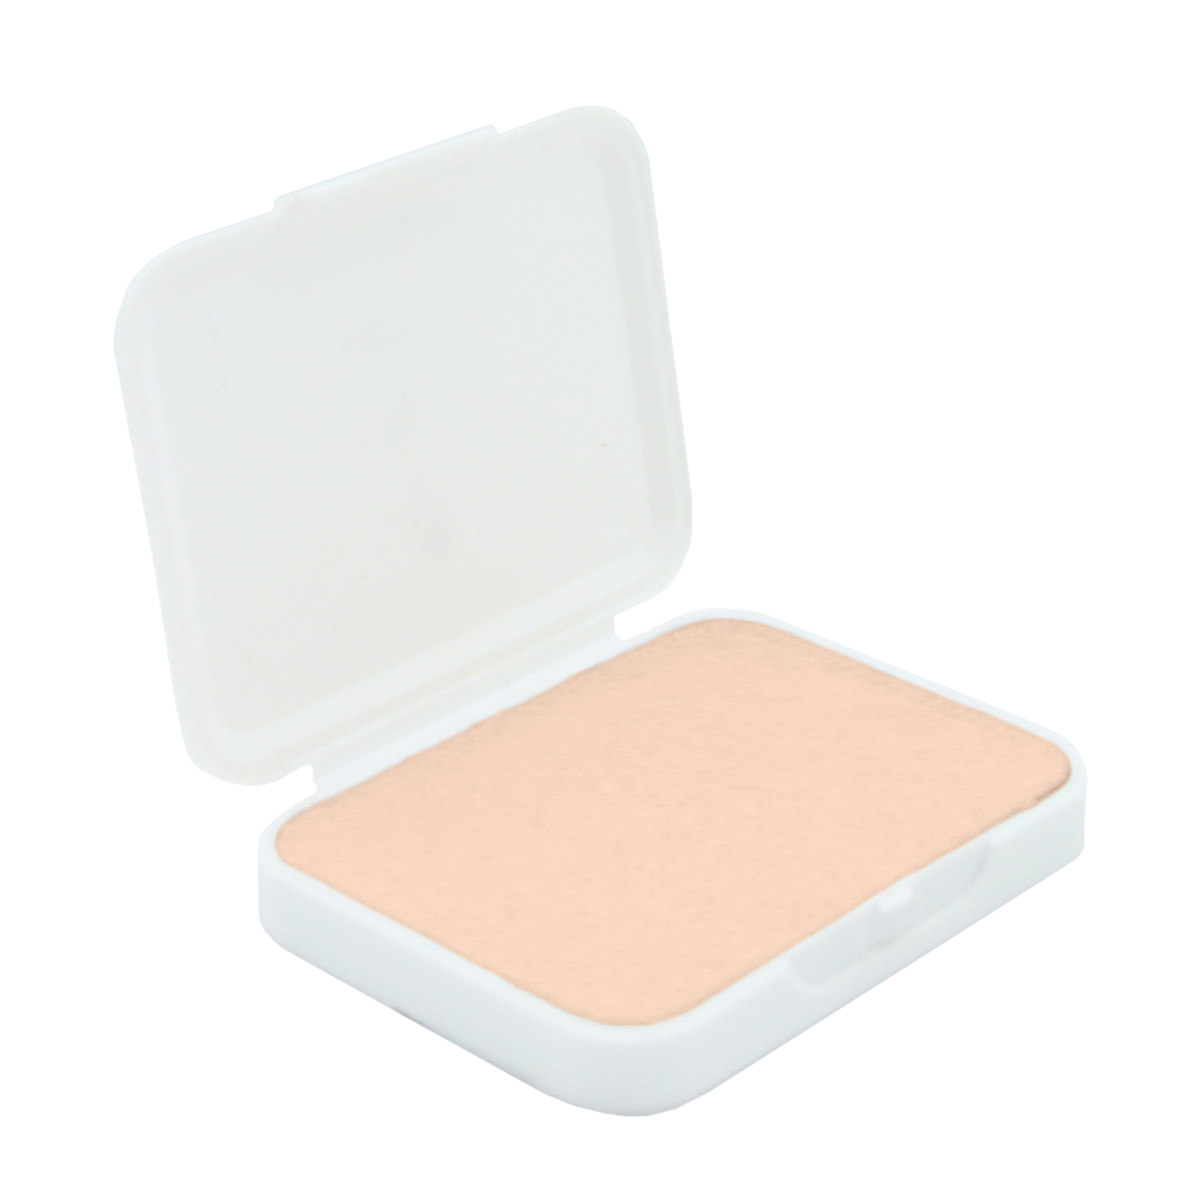 Caring-Colours-UV-White-Duo-Function-Cake-Refill-Nude-Bean-sfw